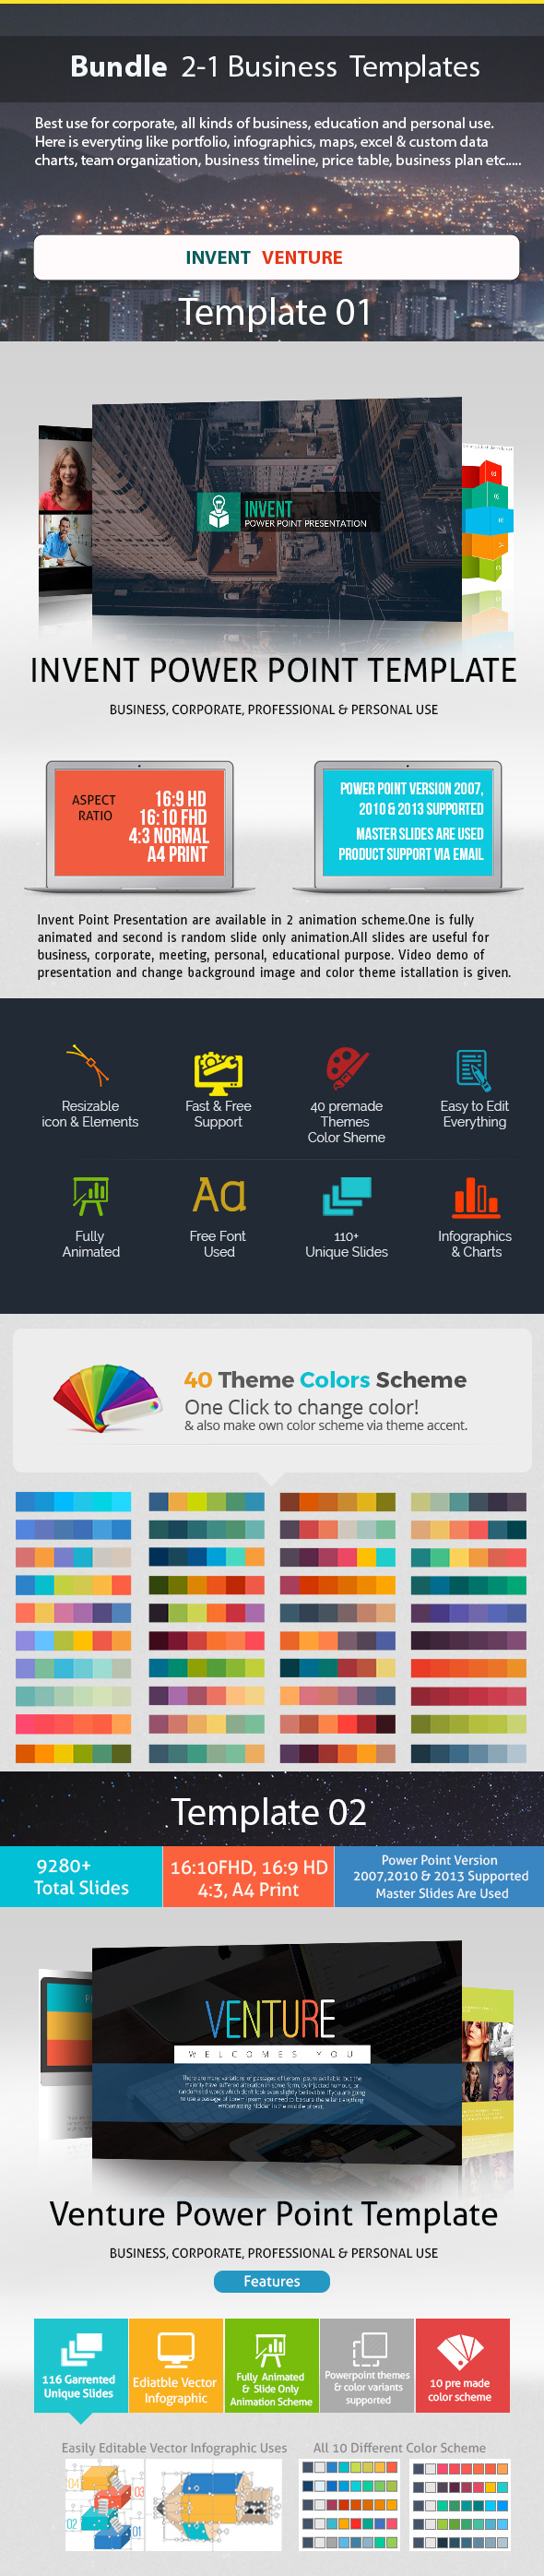 Business Bundle 2 in 1 Power Point Presentation - Business PowerPoint Templates